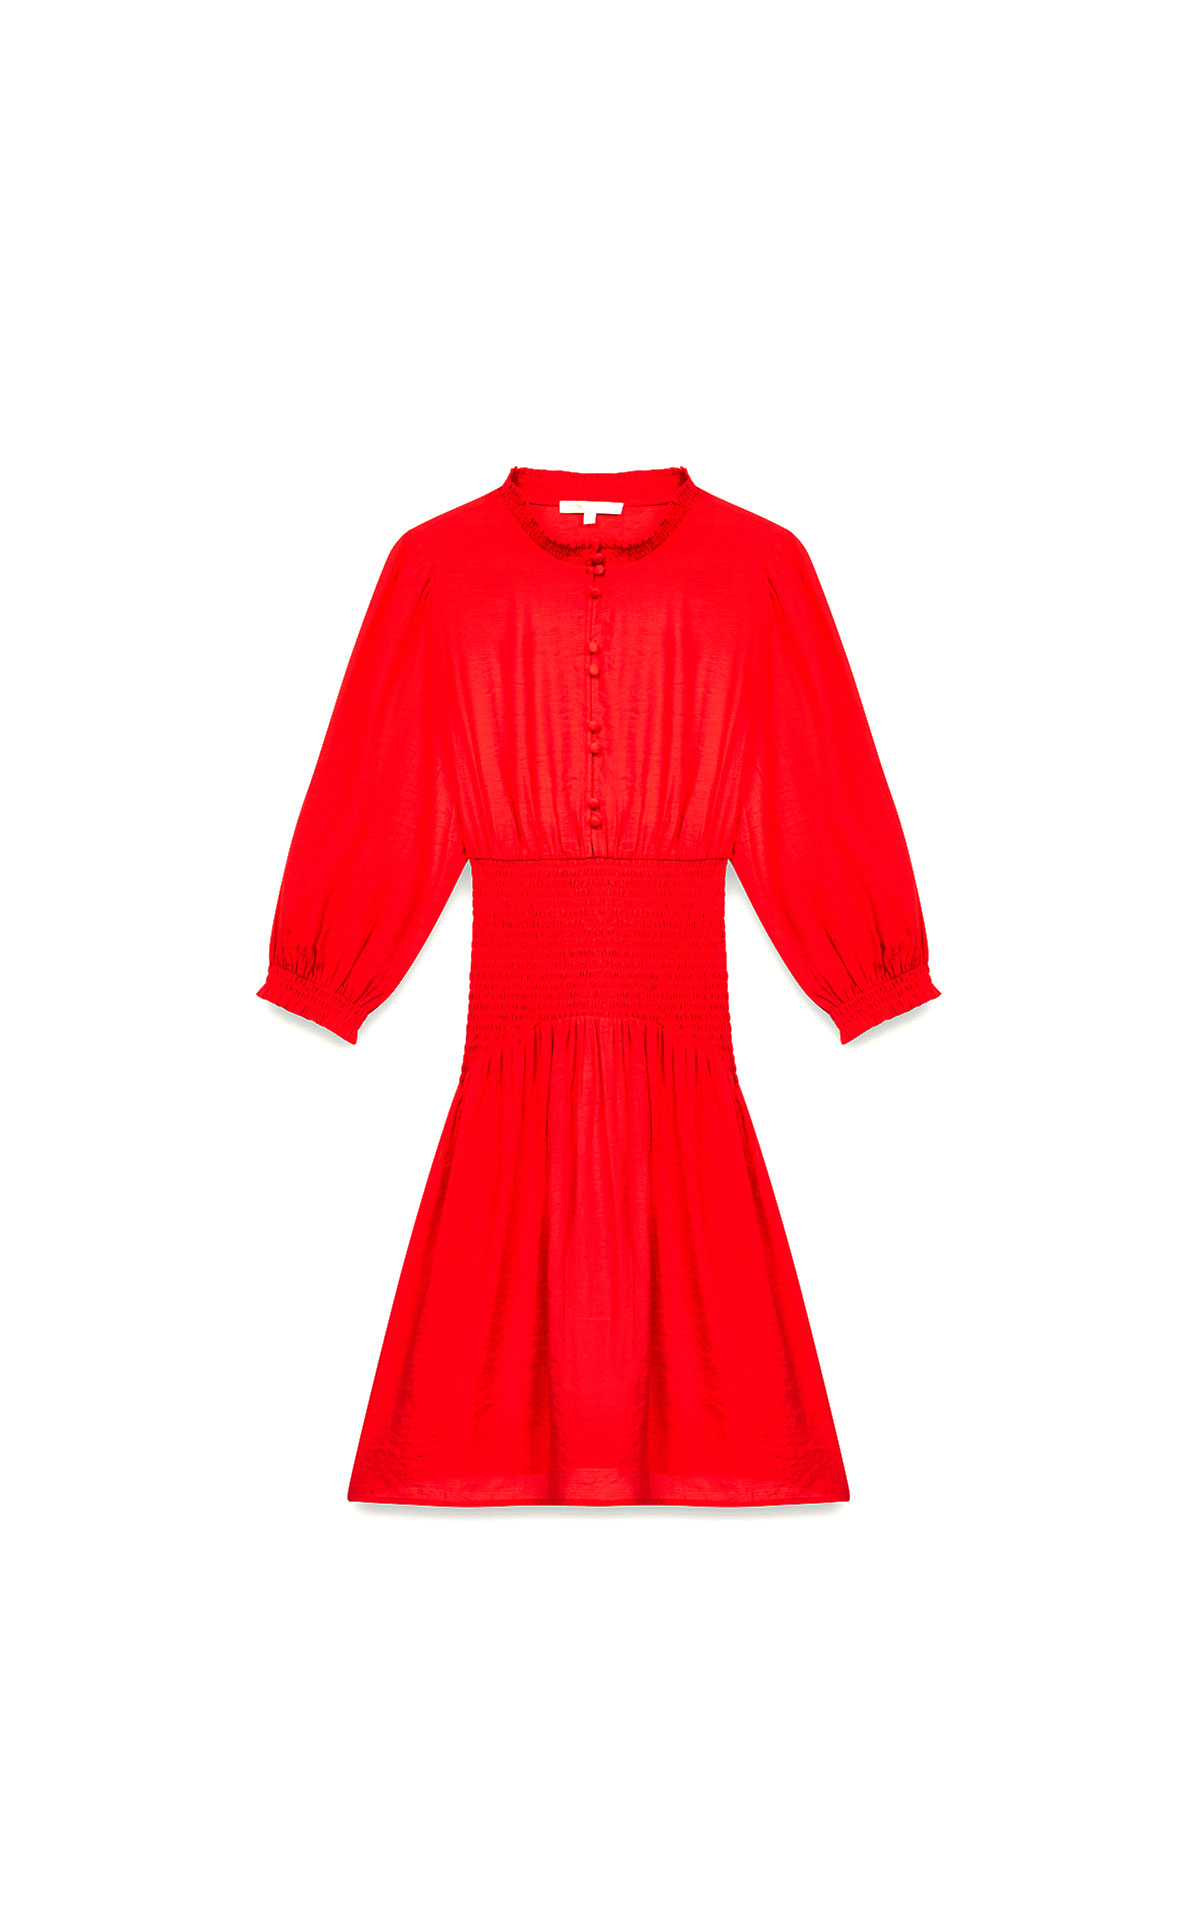 Maje mid length smocked red dress at The Bicester Village Shopping Collection